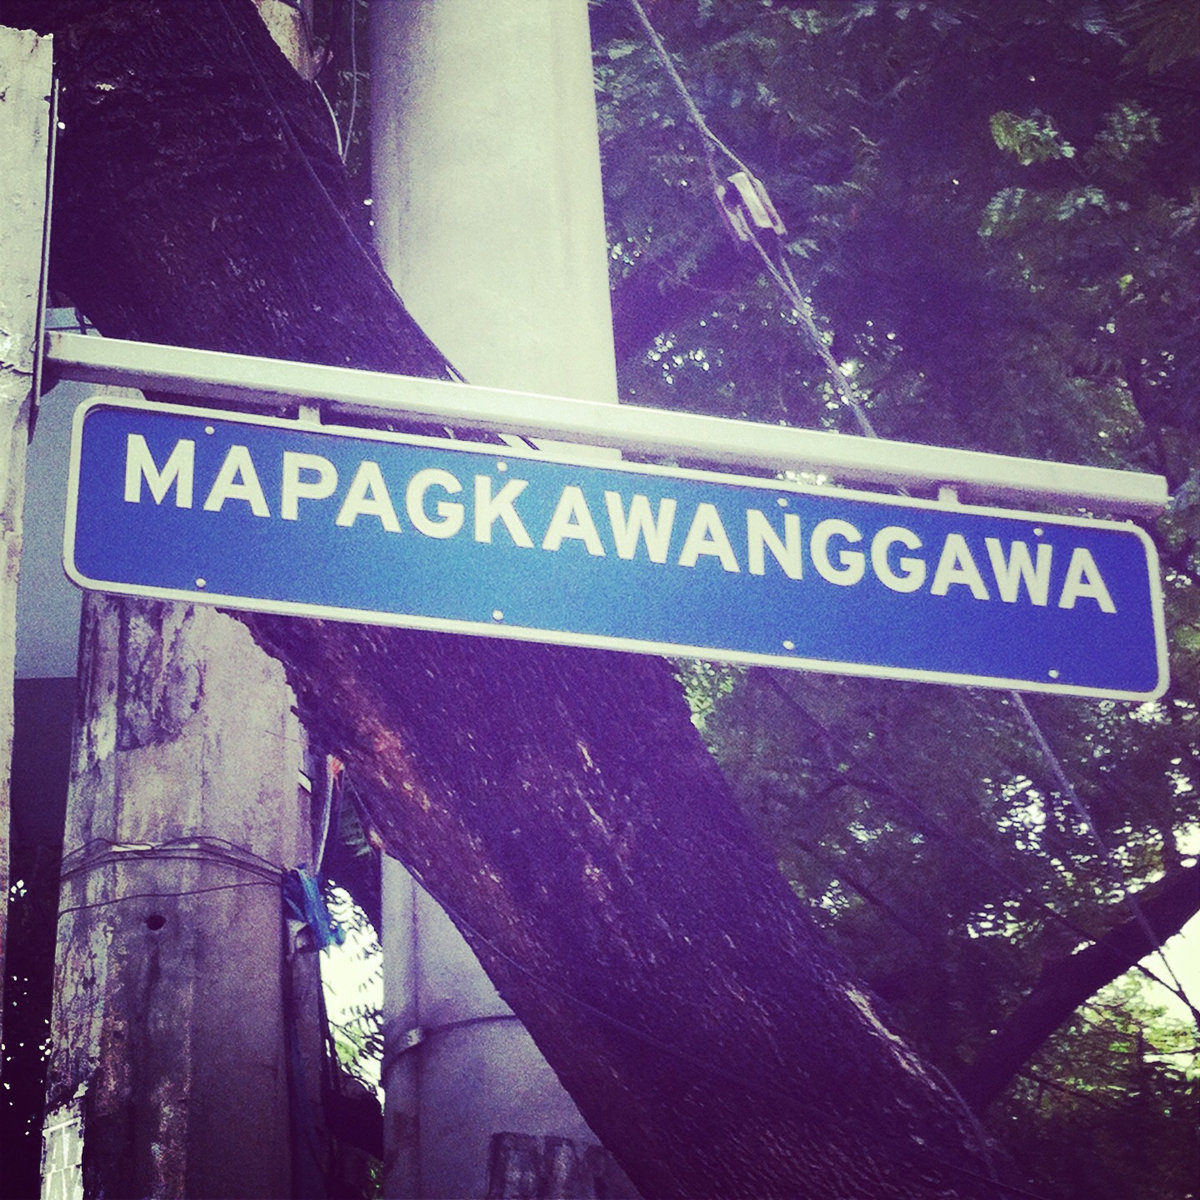 """MAPAGKAWANGGAWA- Ira Lawrence's DEBUT ALBUM  """"That mandolin does sound haunted in a very good way."""" –Jens Lekman  Ira Lawrence is an internationally produced playwright who inherited a haunted electric mandolin from his estranged grandmother in 2014. After releasing his acclaimed debut EP """"Elegant Freefall"""" (Independent Clauses #9 Best EP of 2015), he left Brooklyn for the Philippines with his AustraliAmerican Theater Collective EVERYTHING IS EVERYWHERE (2 Aussies 2 Americans 2 gals 2 dudes 2 goys 2 Jews 2 legit 2 quit) to write, teach, and perform at Sipat Lawin's Karnabal Festival of performance and social innovation.  WATCH SIPAT ON CNN:  http://cnnphilippines.com/life/culture/arts/2016/09/14/independent-theater-in-the-philippines.html  While in The Philippines, Ira visited bombed out hospitals on the island of Corregidor, a sunken cemetery on the island of Camiguin, and almost got cast as a lead in a Filipino soap opera. MAPAGKAWANGGAWA, his debut album, is a self-recorded 11-song musical travelogue informed by Ira's adventure abroad- exploring alienation from friends, the excitement of being immersed in a new culture, and America's tenuous history with The Philippines (which at one point was on track to be America's 51st state).   MAPAGKAWANGGAWA is also a Tagalog word for charitable and philanthropic. So, upon the album's release in Fall of 2016, one dollar of every album sale will be donated back to The Sipat Lawin Ensemble- the vibrant and audacious Filipino theater company behind Karnabal. The album was self recorded in Brooklyn at Ryan & Molly's apartment between Christmas and New Years 2015 and mixed and mastered by John Jagos aka Brothertiger in Greenpoint. NO SYNTHS NO GUITARS NO DRUMS ONLY IRA LAWRENCE'S HAUNTED MANDOLIN  CRITICAL PRAISE:  """"A stringed instrument on an acid trip, being played within a haunted house.""""- Soundwaves Review  """"MAPAGKAWANGGAWA, is an album of unique and unforced style that cements Lawrence as an artist to be watched""""- Artist D"""